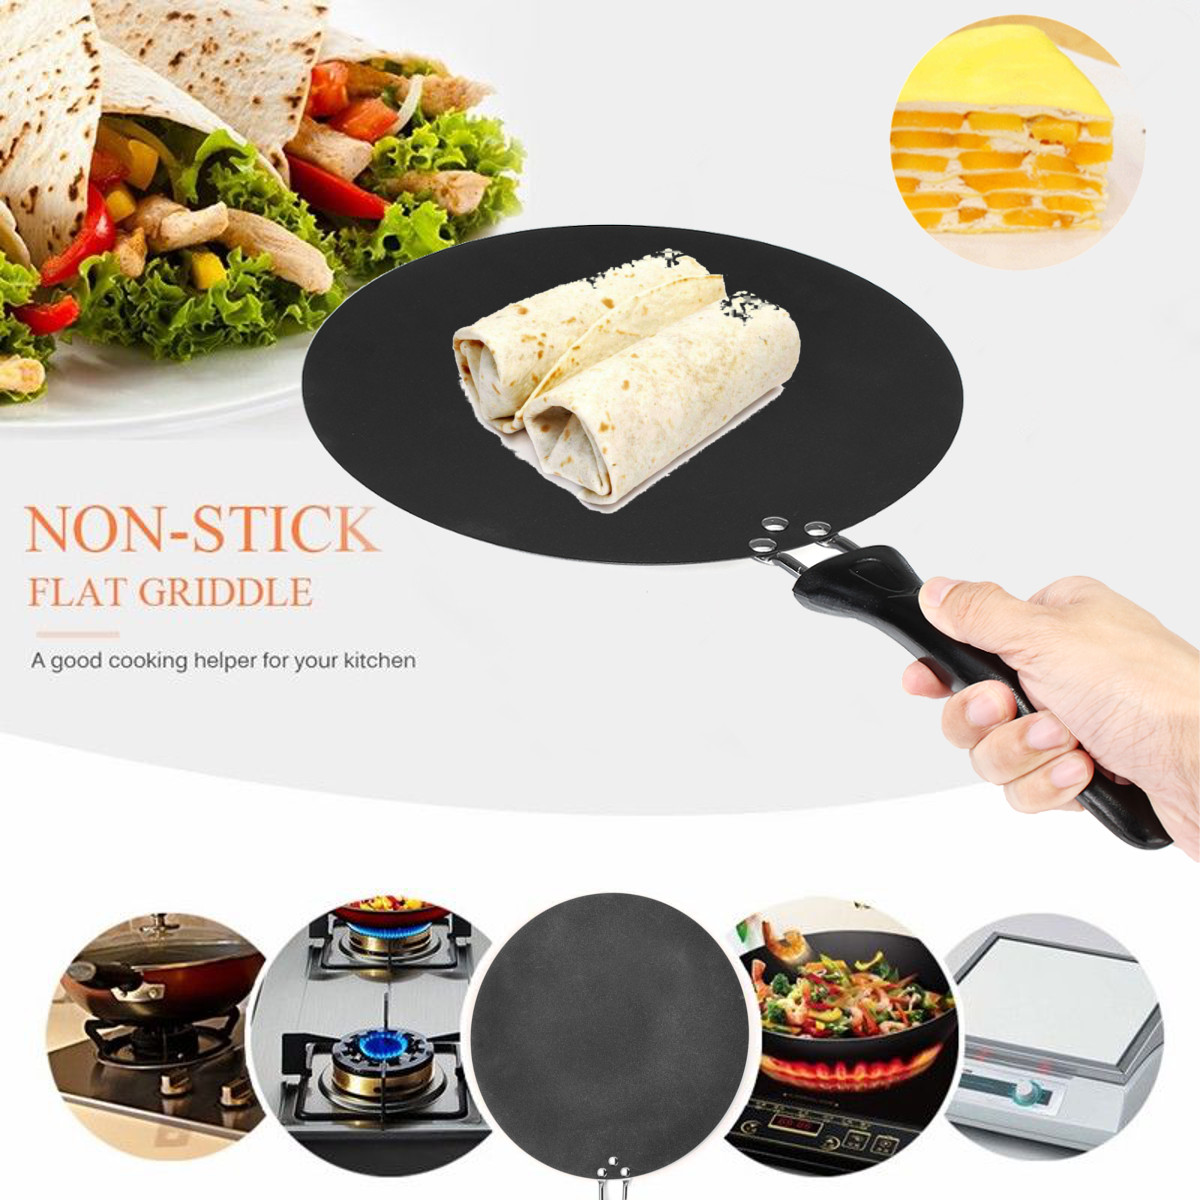 Kitchen Non-Stick Pancake Pan Crepe Maker Flat Pan Frying Griddle Fire Stoves Household Camping Cookware Portable Lightweight